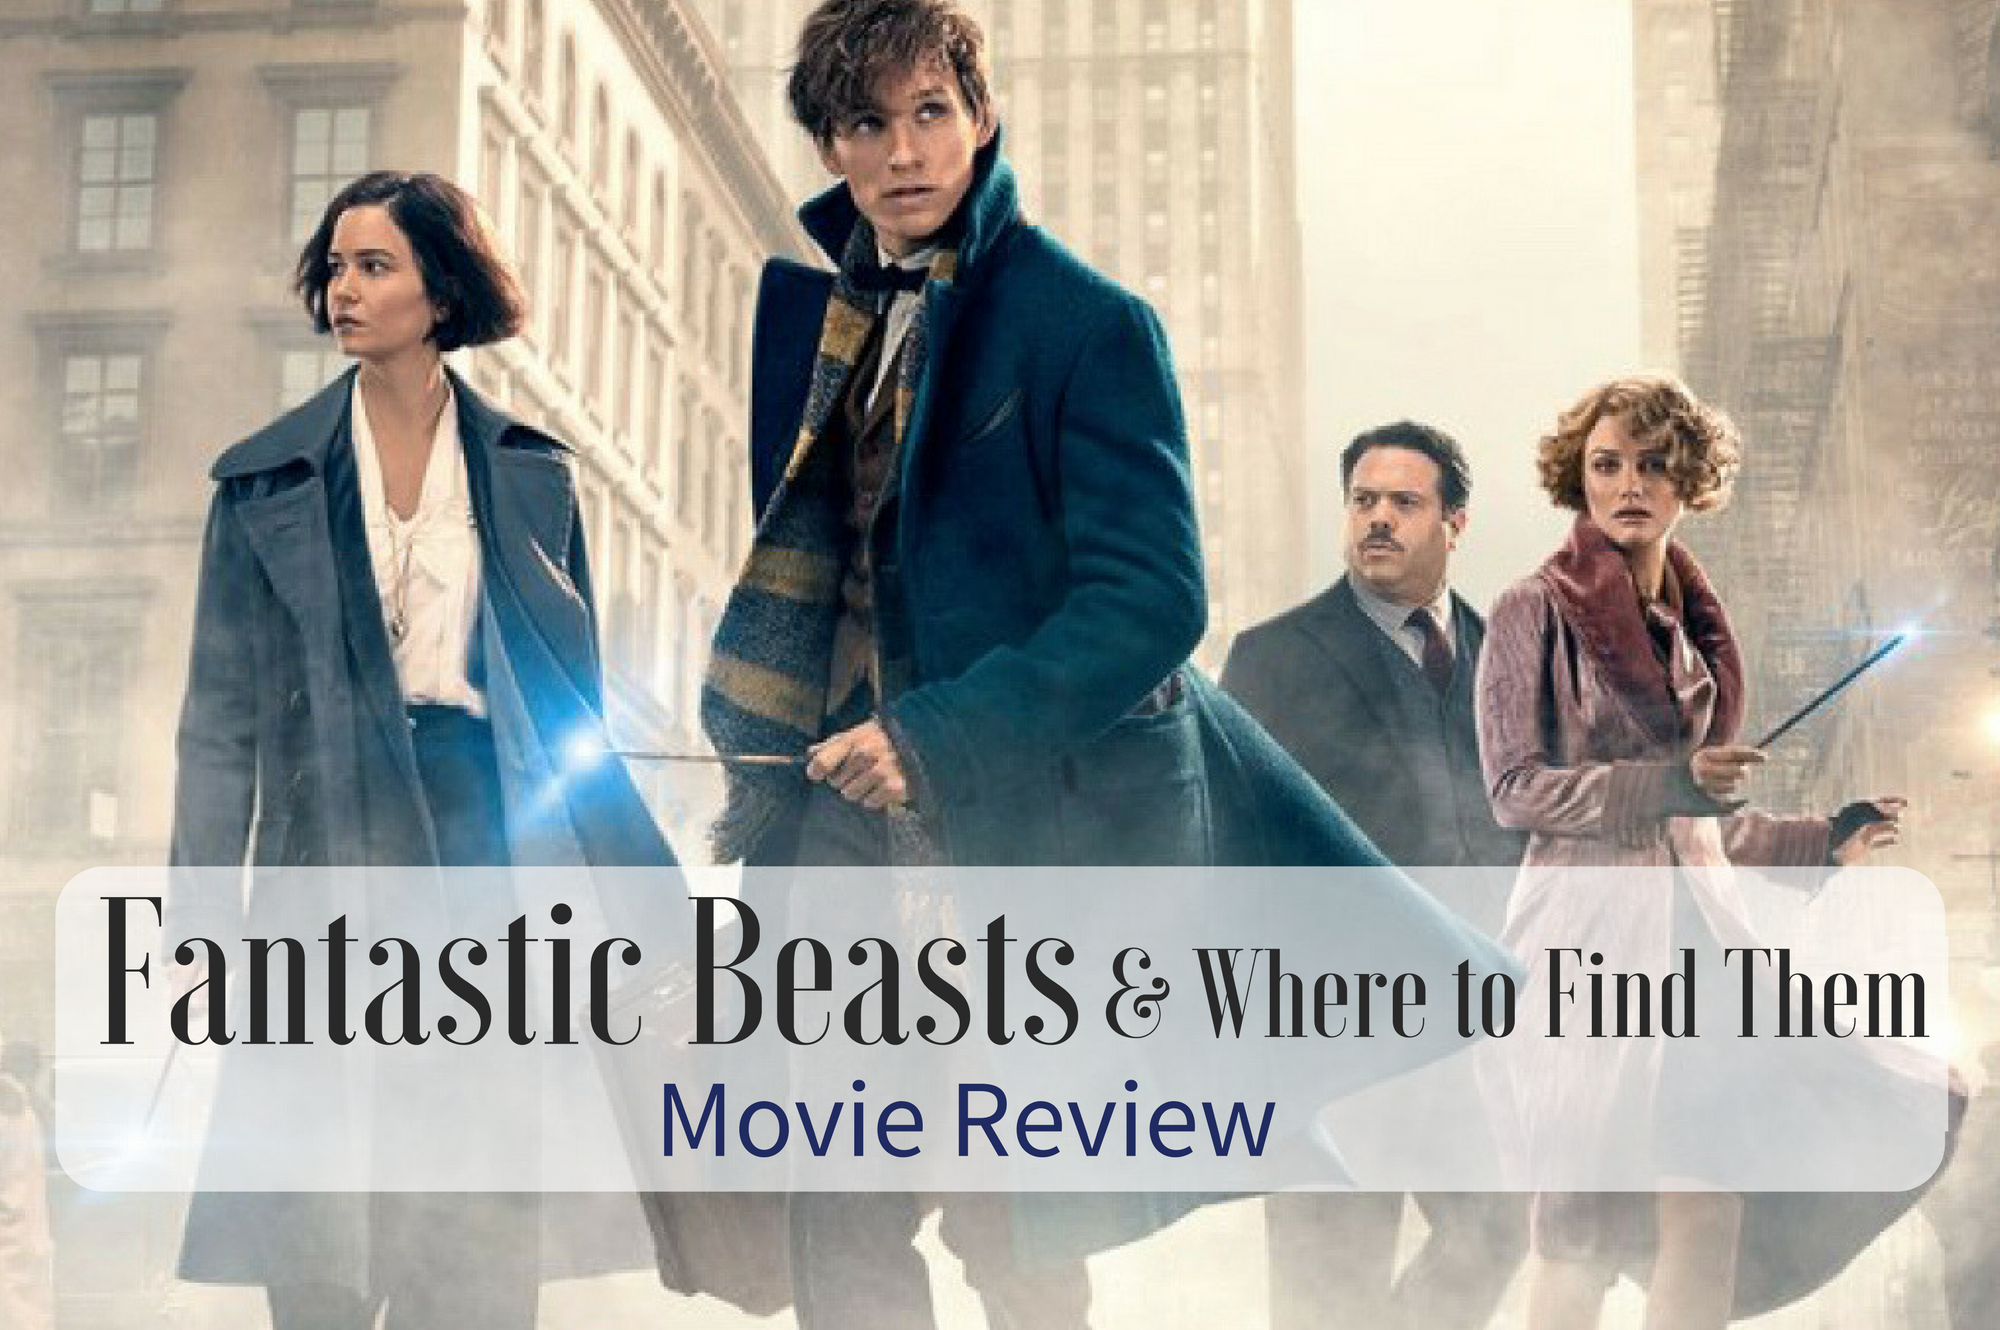 Saucepan Kids - Fantastic Beasts and Where to Find Them movie review - Is it suitable for young children?